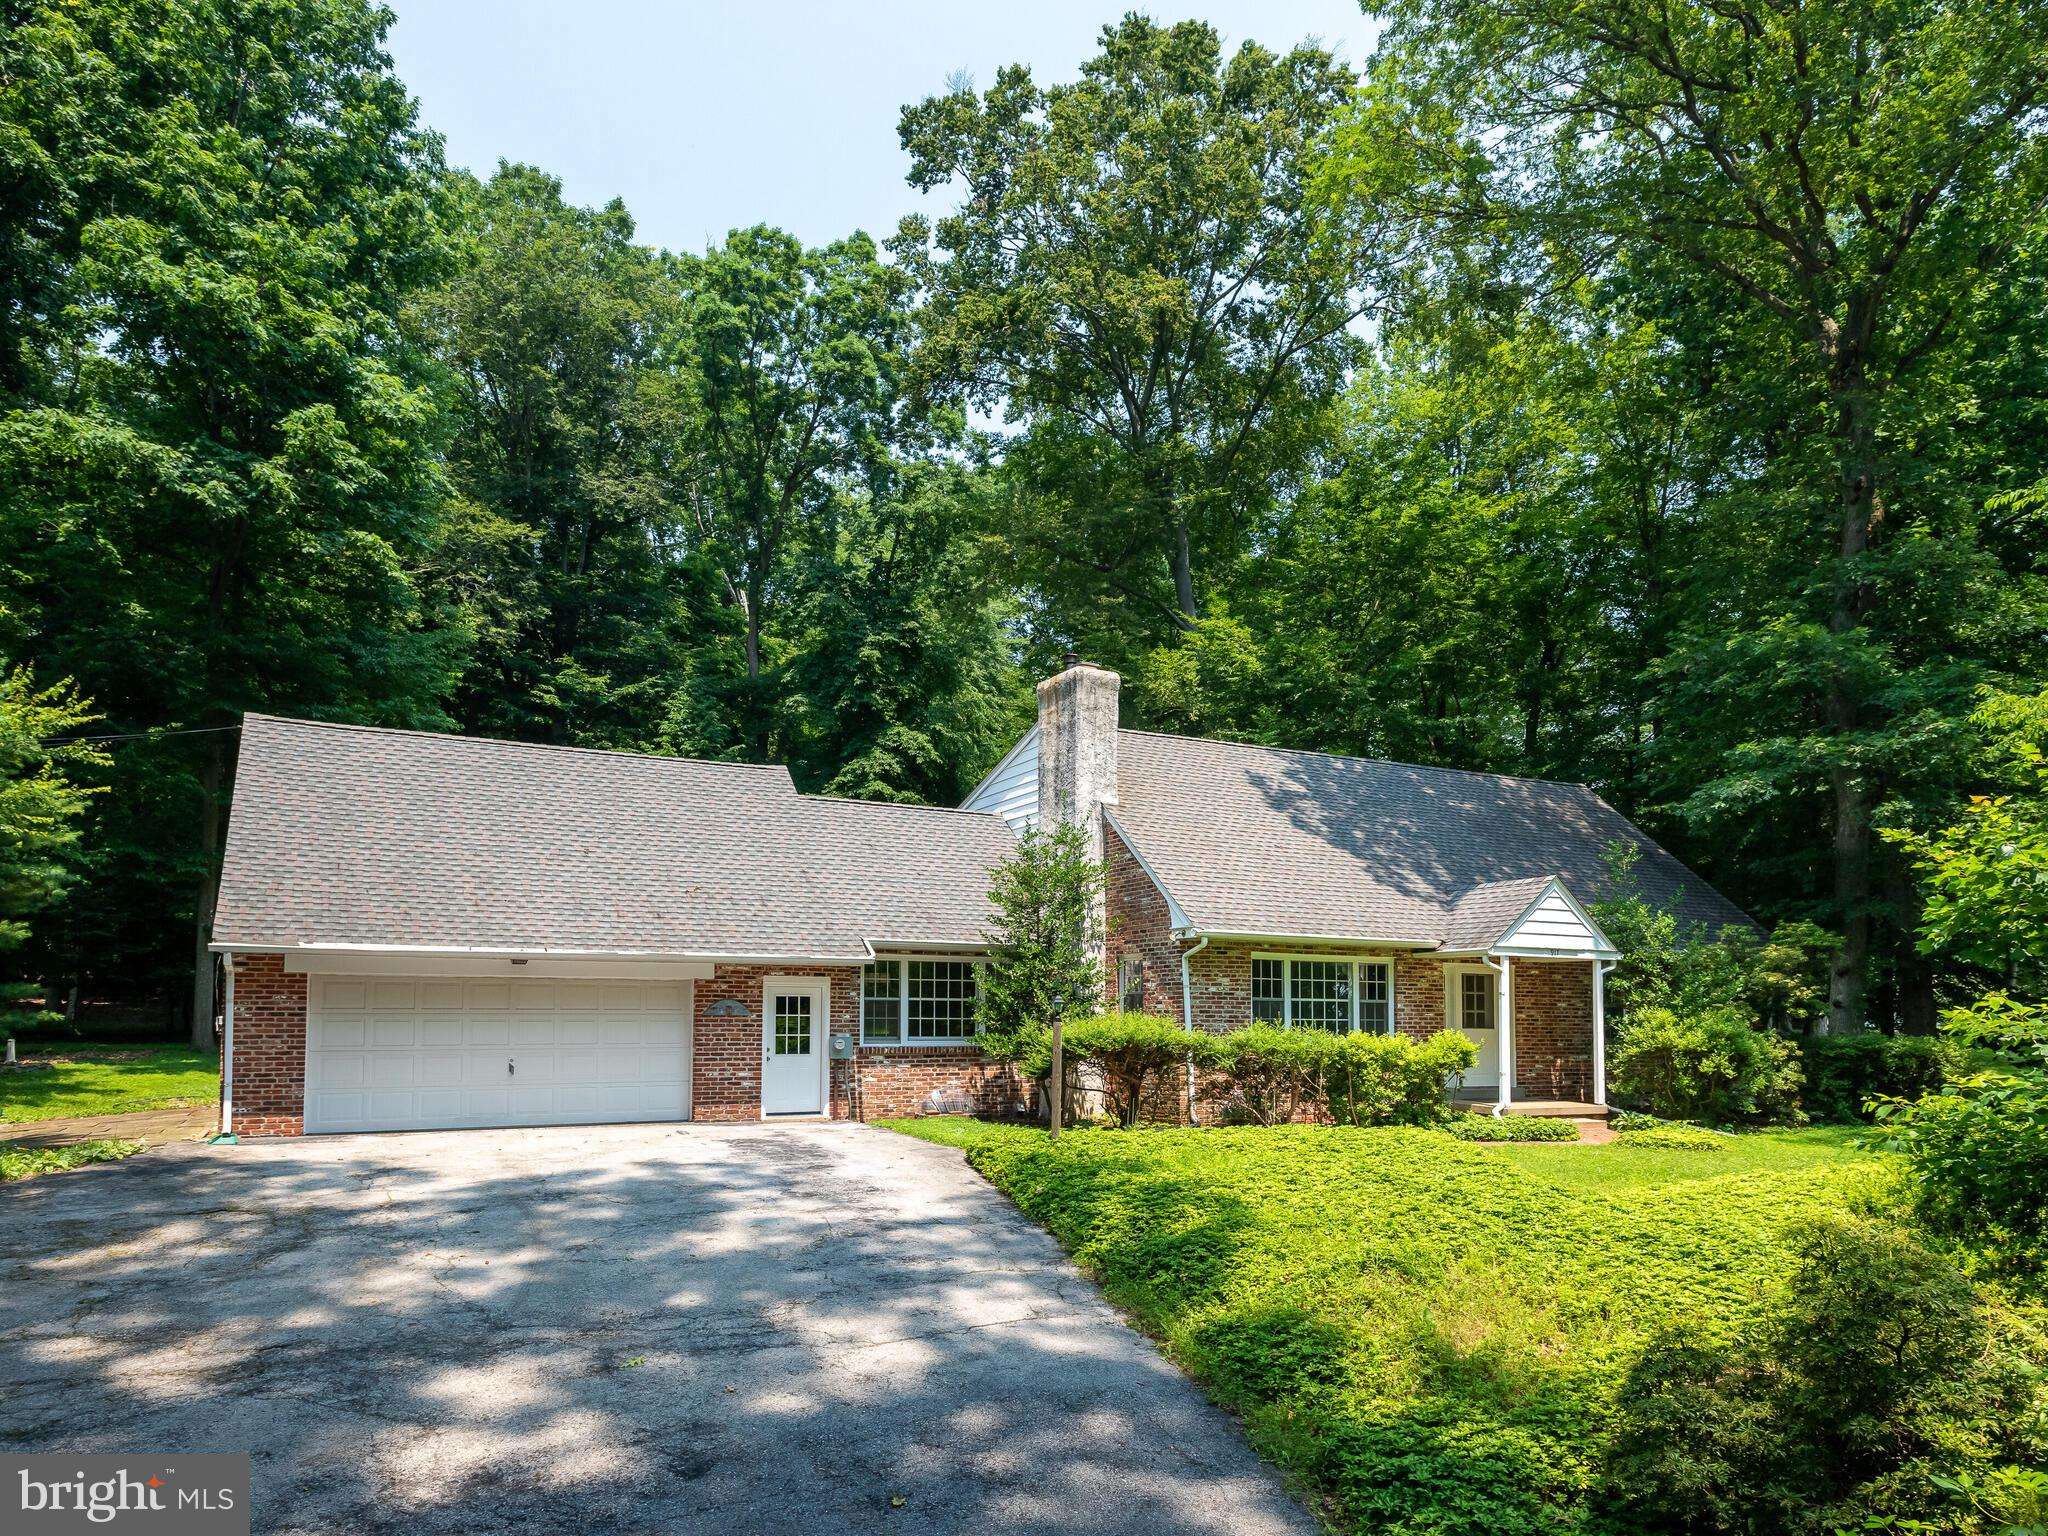 If you have been looking for a large, private, four bedroom home in the West Chester Area School district, your wait is over.   917 Warrior Road is situated on two full acres of land and within walking distance to East Goshen Park.  This serene, peaceful setting has a huge flat backyard that backs up to woods.  The deck is the perfect place for morning coffee and taking in the beauty of this natural setting.  Inside the house you will find a custom floor plan that has been upgraded.  As you enter the house,  the first floor living room is flooded with natural light.  The extra large galley kitchen is the perfect place to cook and eat meals while watching the beauty outside.  The downstairs has two bedrooms and a full bath, giving the option for a first-floor main bedroom.  Upstairs you'll find two additional large bedrooms, an enormous walk in closet and another full bathroom.  The original hardwood is in great shape and lends character to this special home.  The basement is partially finished and adds tons of living space.  There is also potential for a fifth bedroom downstairs, as well as so much more.  The creative buyer will fall in love with how much extra space the basement provides.   917 Warrior Road has 2 acres of land, low taxes, is extremely private, yet is still close to everything you love about West Chester.